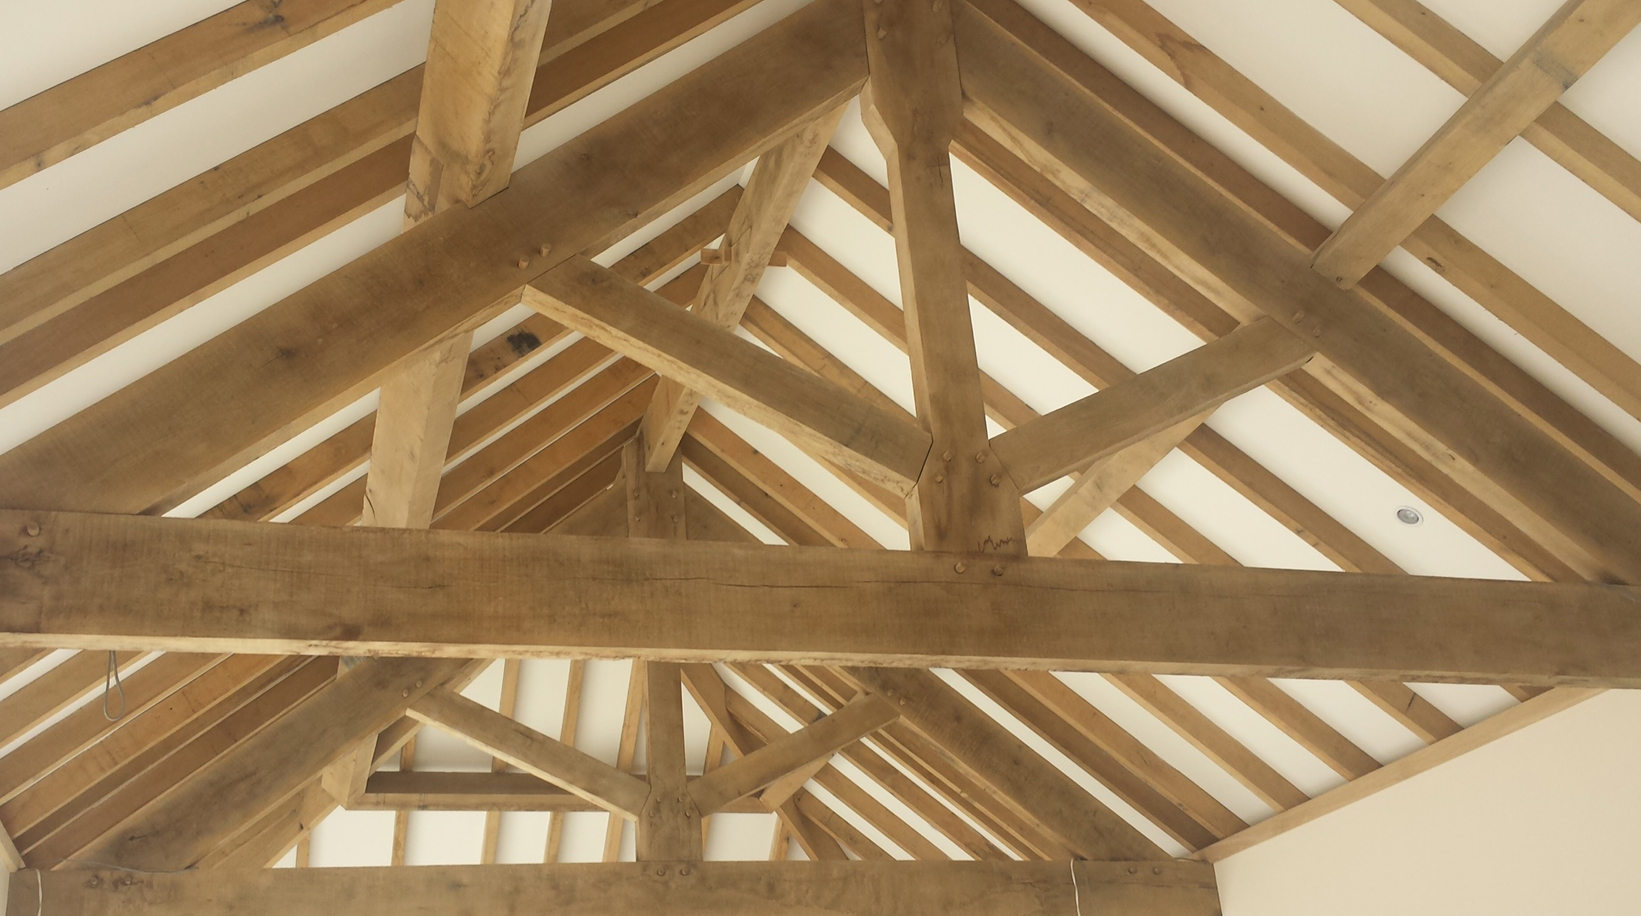 OAK FRAME TRUSSES